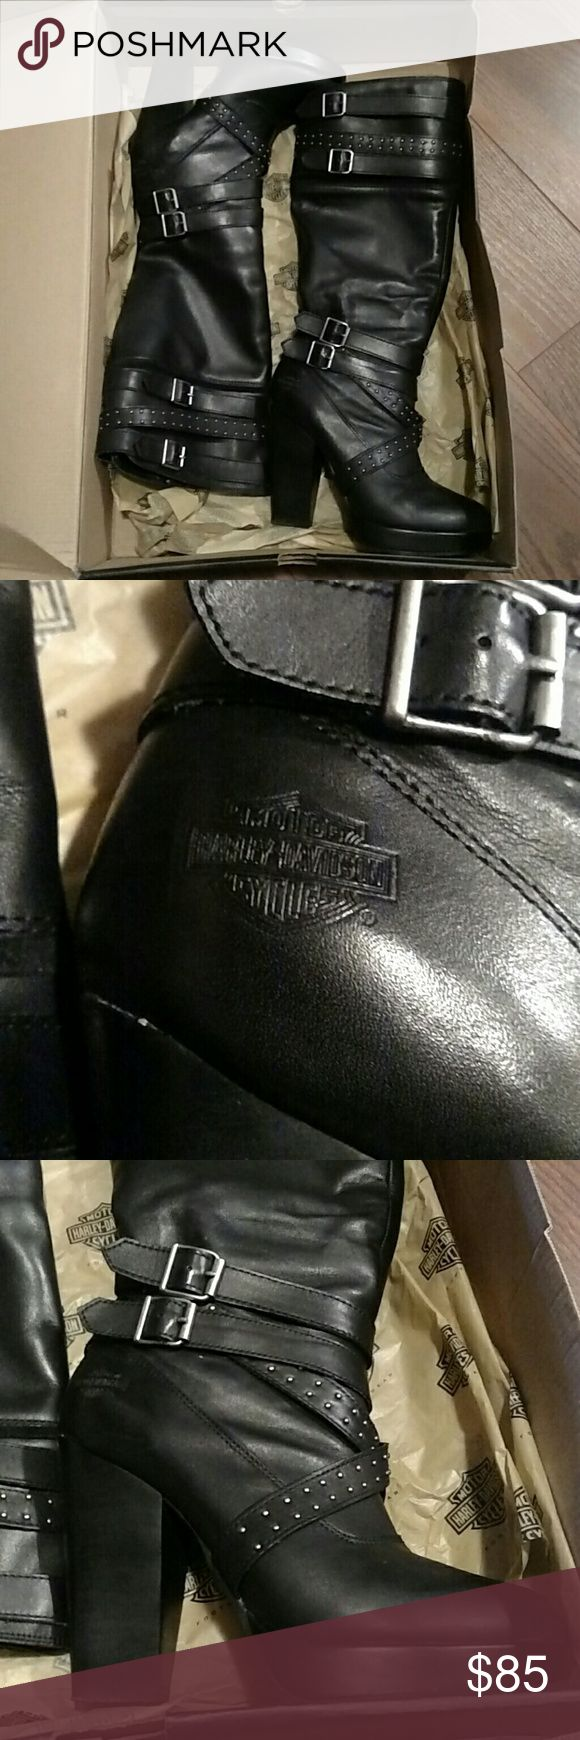 Harley Davidson Karlia knee high boots 8.5 Harley Davidson women's knee high boots Style: Karlia Black Leather Zip up side Excellent used condition, worn once 8.5 Silver studs Harley-Davidson Shoes Heeled Boots